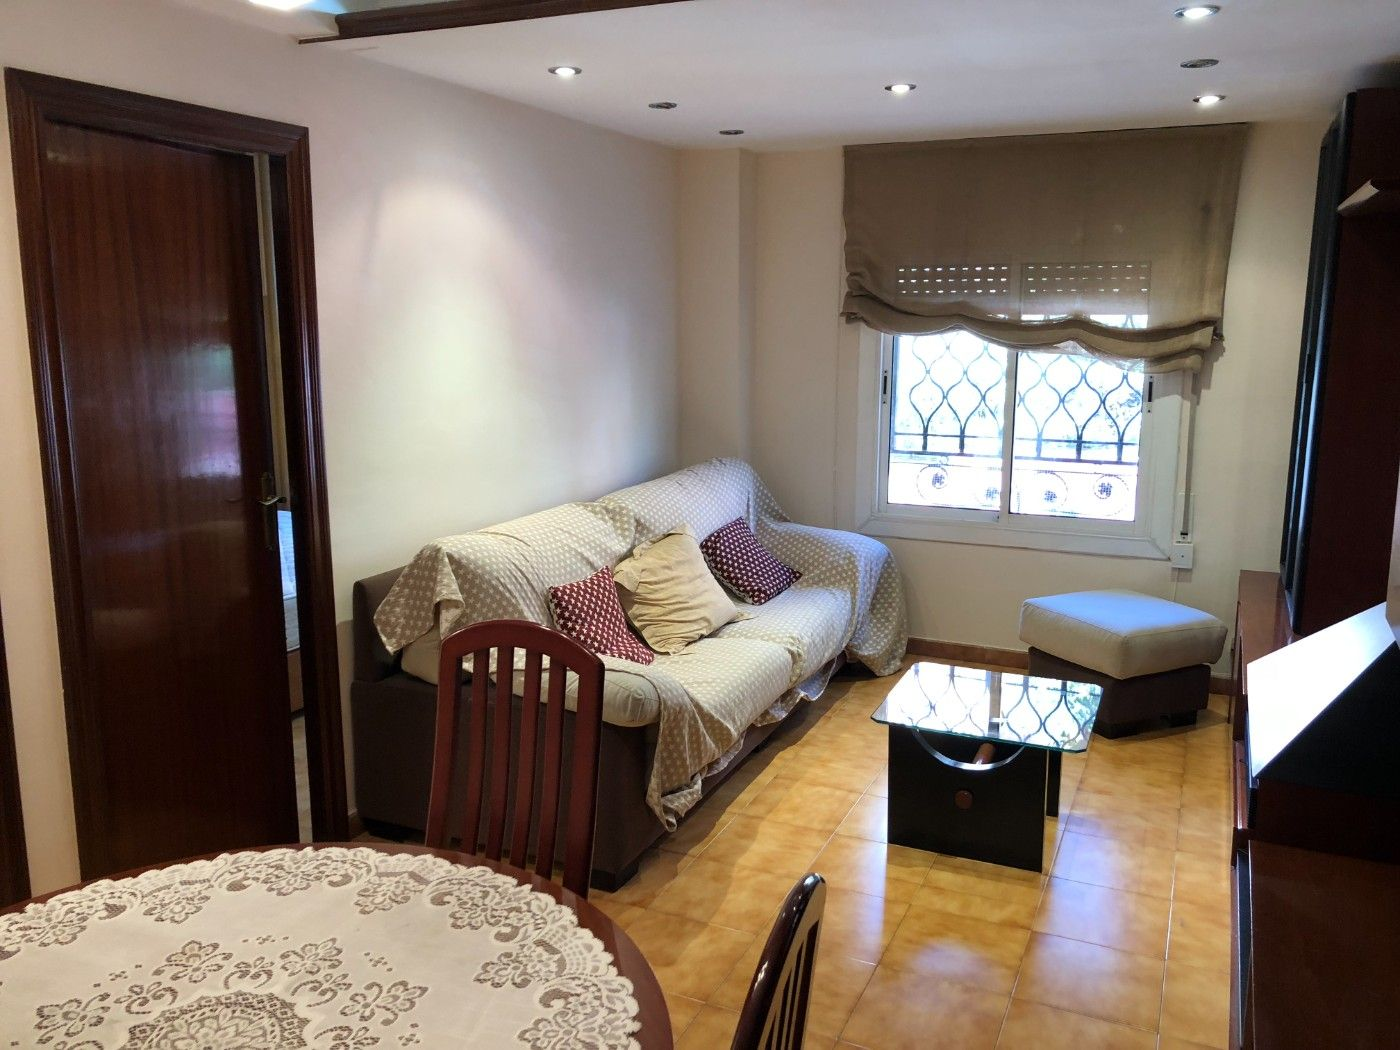 Rent Apartment in Carrer larrard, 36. Piso de 2 hab. zona tranquila